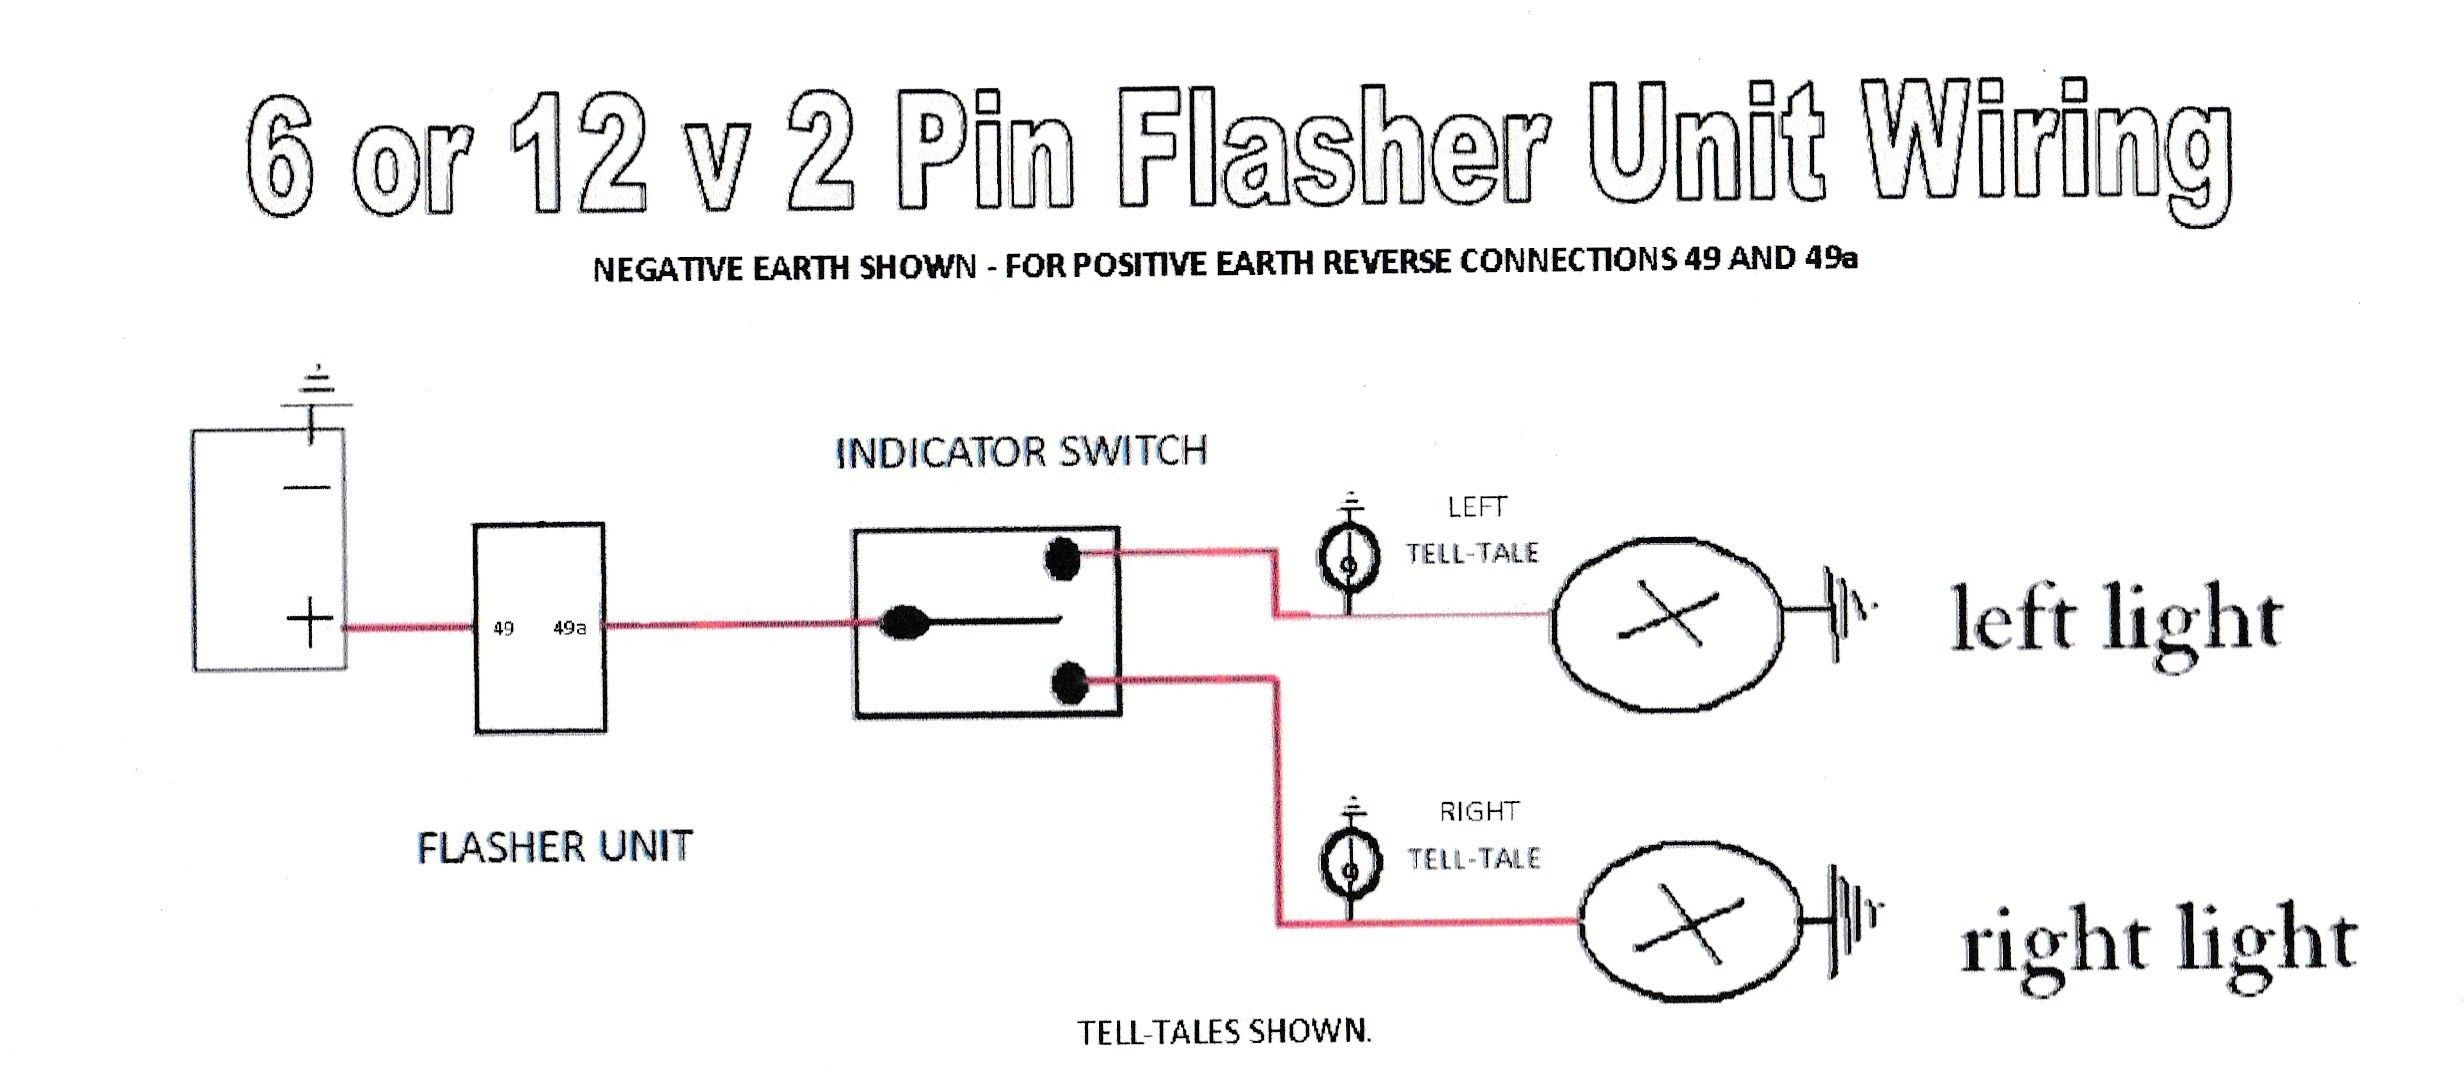 hella flasher wiring diagram flasher wiring diagram e3 wiring diagram  flasher wiring diagram e3 wiring diagram